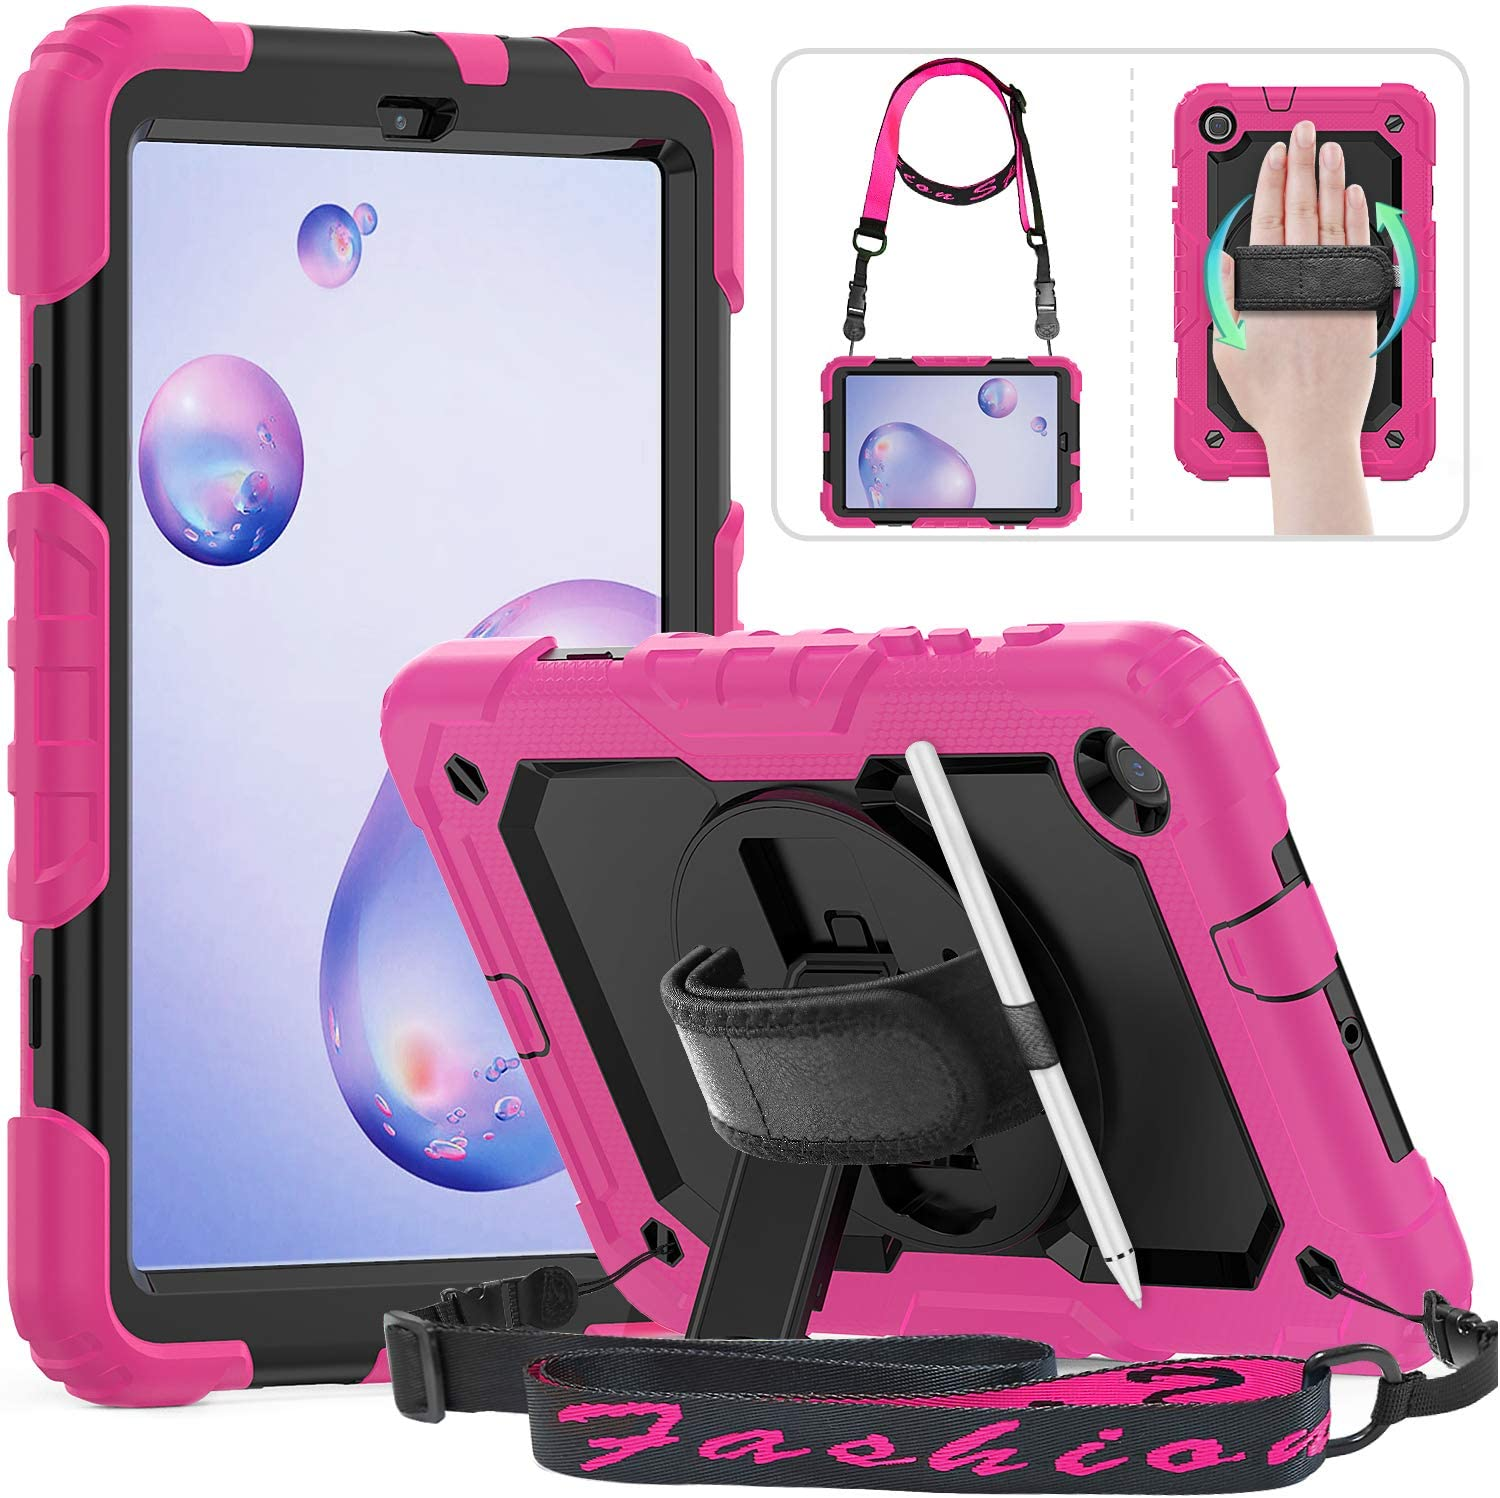 Samsung Galaxy Tab A 8.4 Case 2020 (SM-T307/SM-T307U), HXCASEAC Heavy Duty Rugged Case with 360 Rotating Hand Strap/Stand [Shoulder Strap] Pencil Holder Screen Protector for Galaxy Tab A 8.4 Inch,Pink